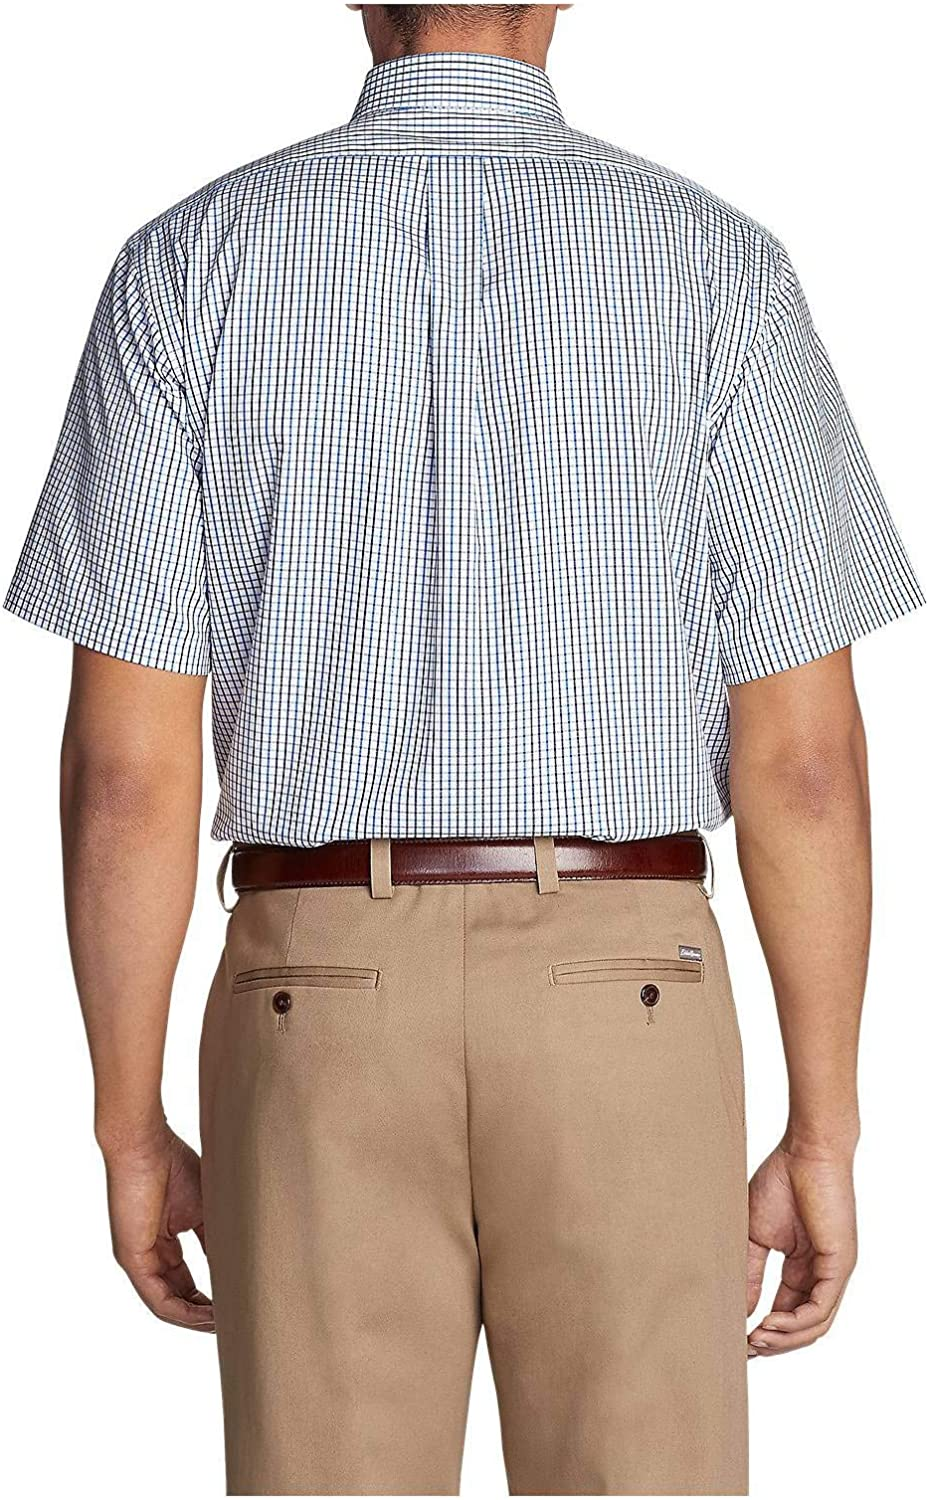 Eddie Bauer Mens Wrinkle-Free Relaxed Fit Short-Sleeve Pinpoint Oxford Shirt